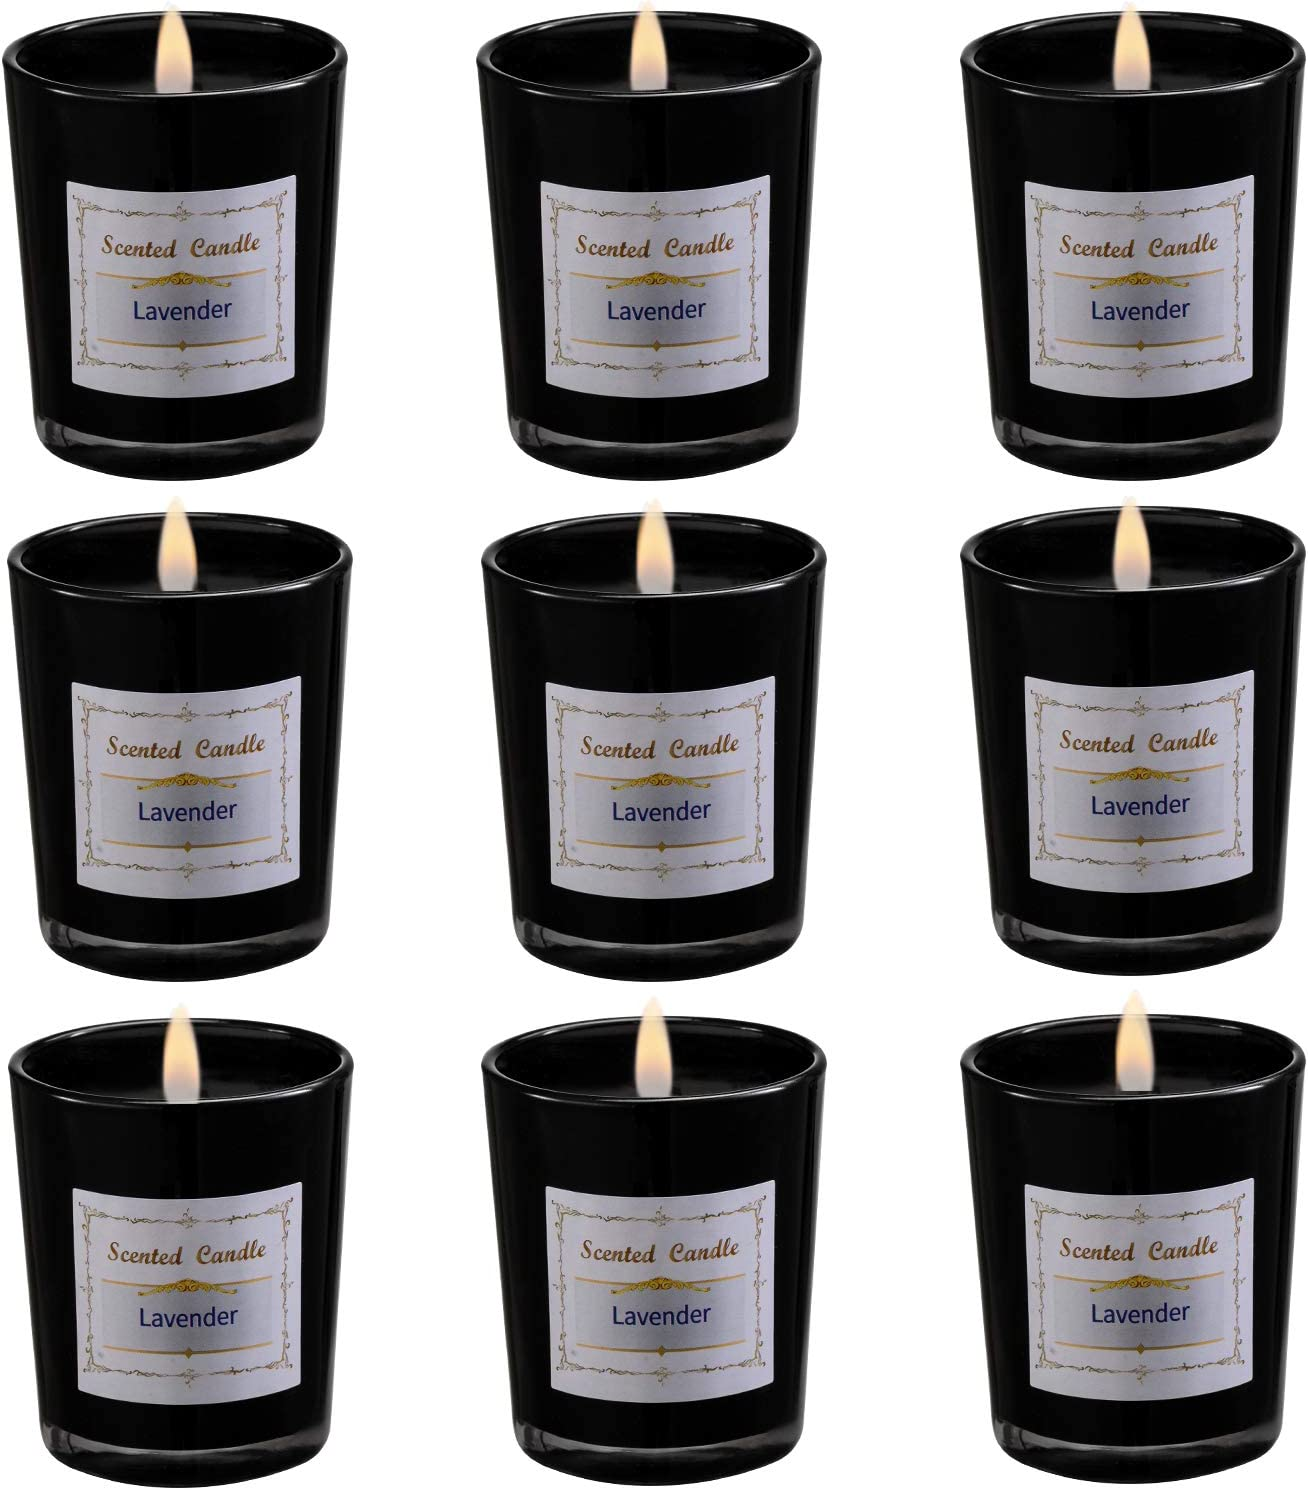 Set of 9 Scented Candles with 9 Fragrances, Natural Soy Wax Votive Candles for Party Dinner Yoga, Relaxing Gifts and Self Care Gifts(Black Color)